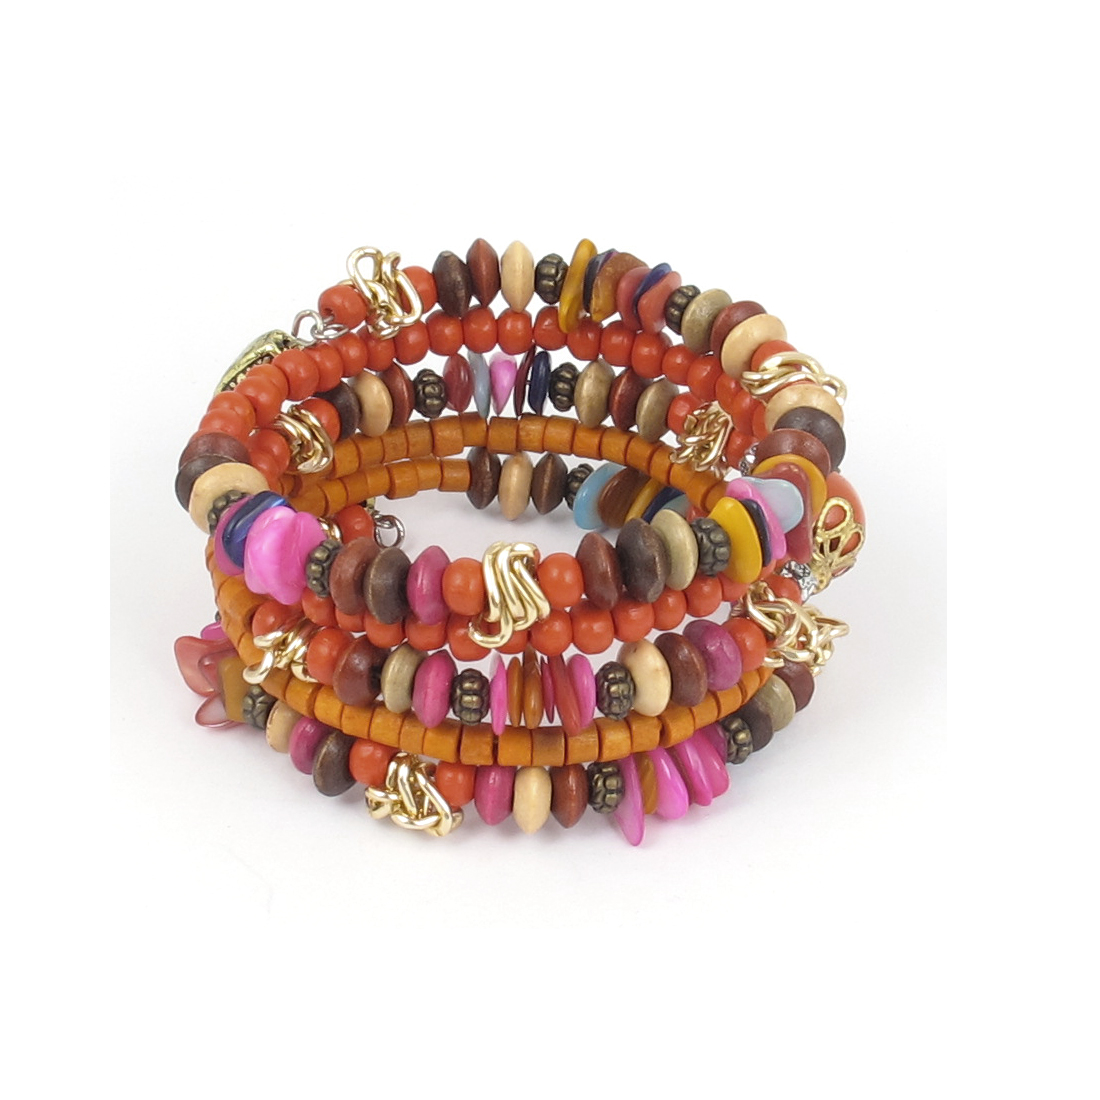 Women National Fashion Handmade Round Cylinder Wooden Beads Multi-layer Wrist Decor Bangle Bracelet Orange Bronze Tone